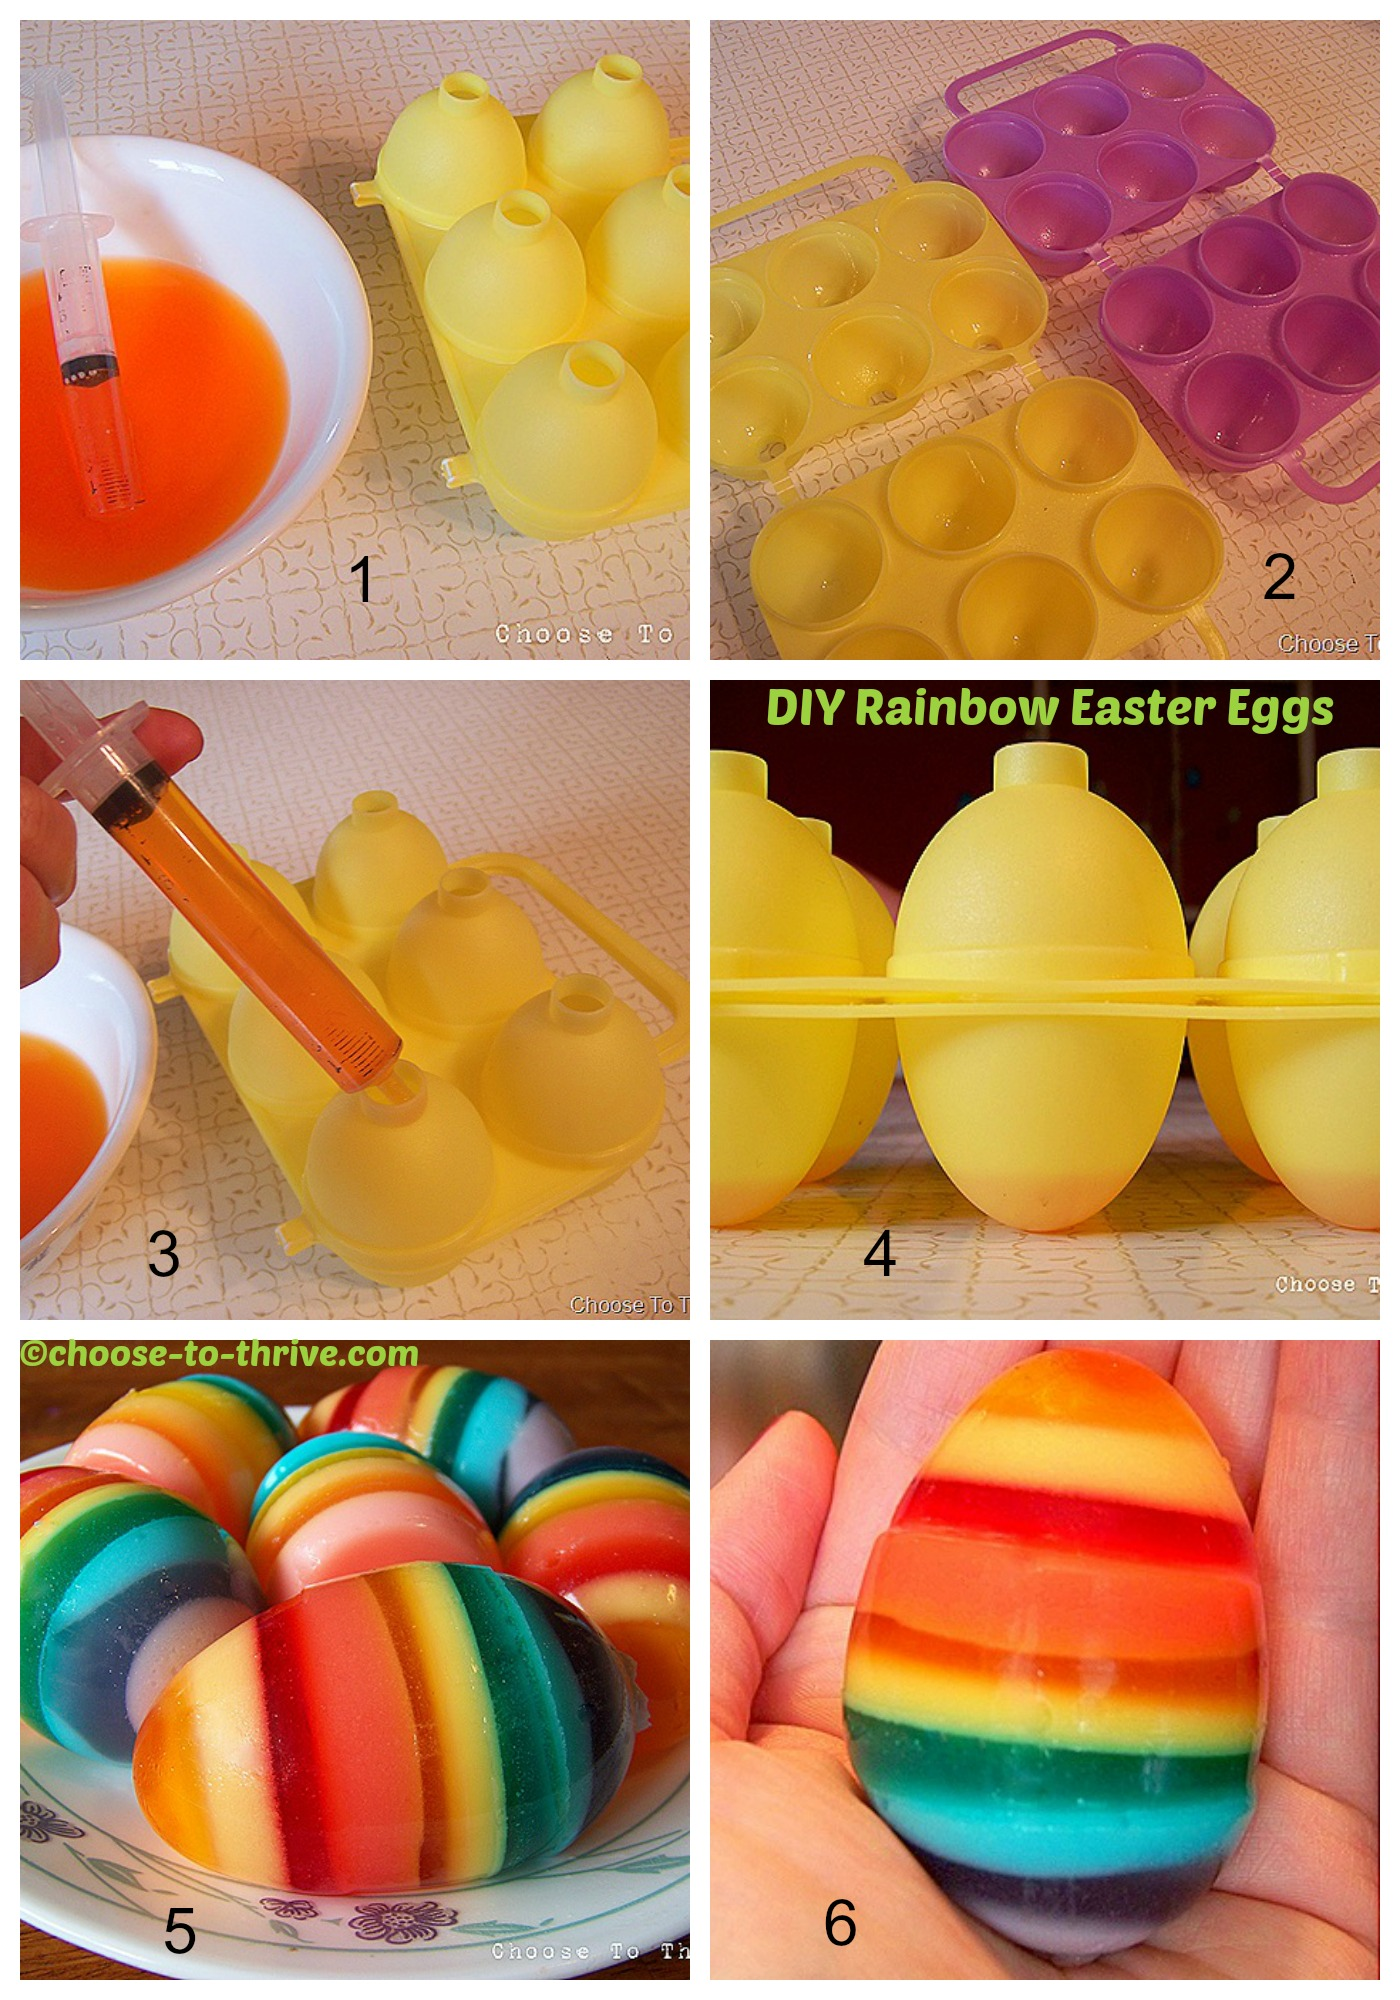 How to make Rainbow Easter Eggs